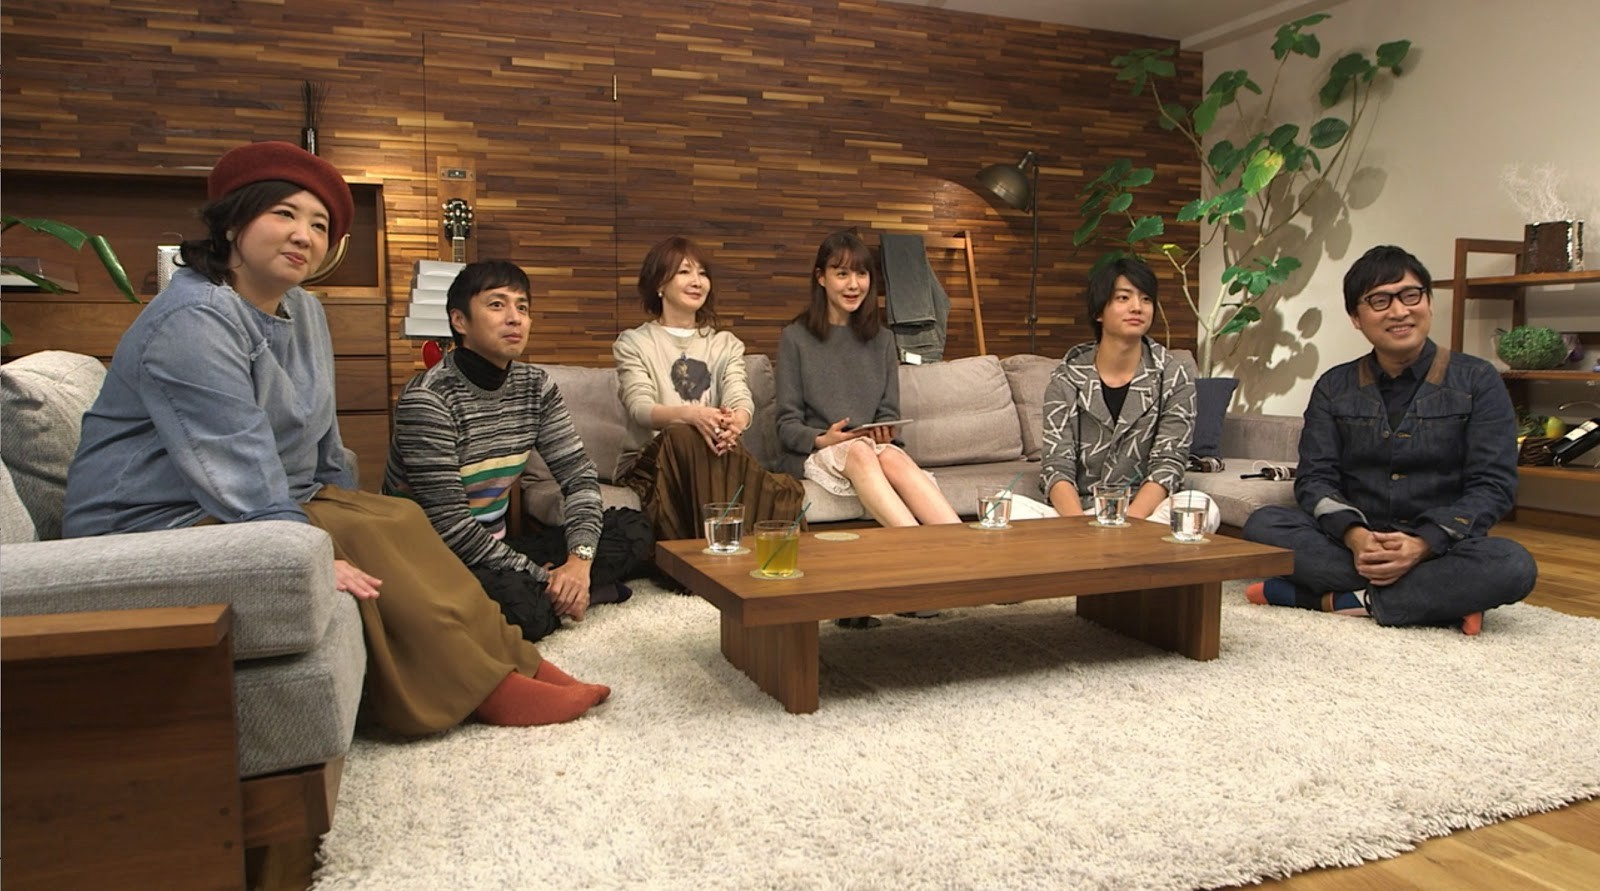 What makes japanese show terrace house a delightful for Terrace house japan cast